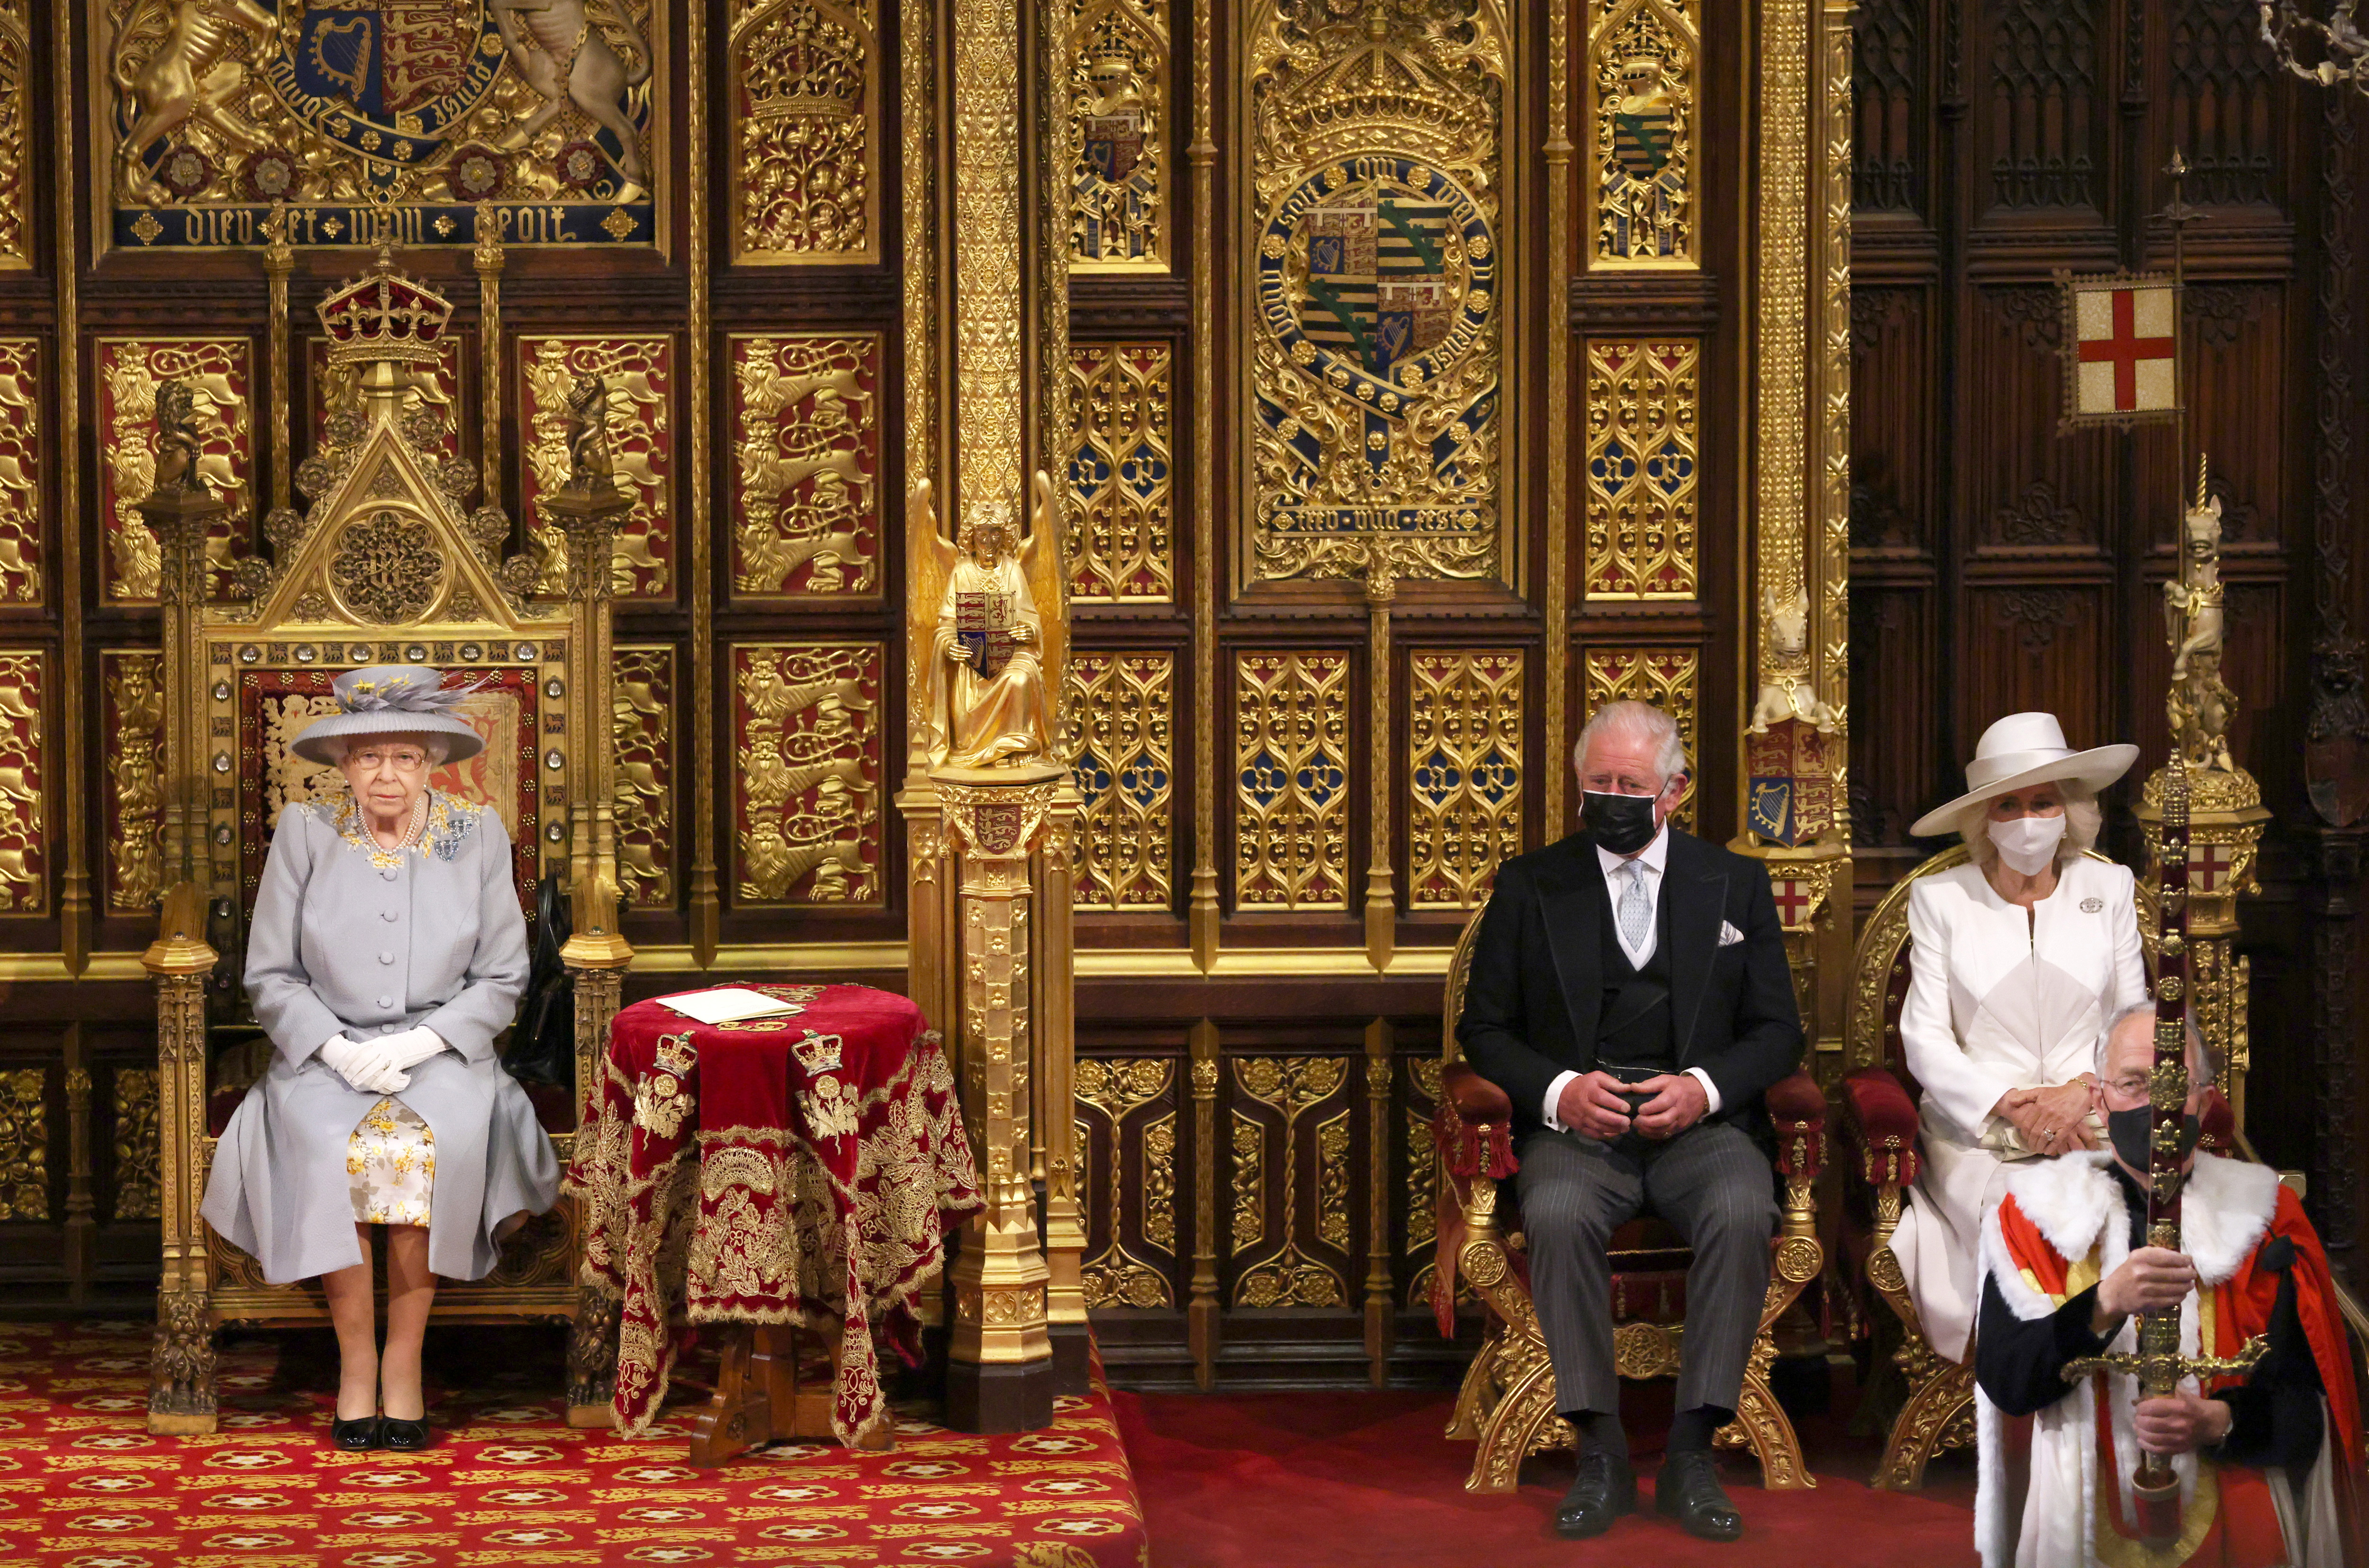 Britain's Queen Elizabeth sits in the House of Lord's Chamber with Prince Charles and Camilla, Duchess of Cornwall for the State Opening of Parliament in London, Britain May 11, 2021. Chris Jackson/Pool via REUTERS